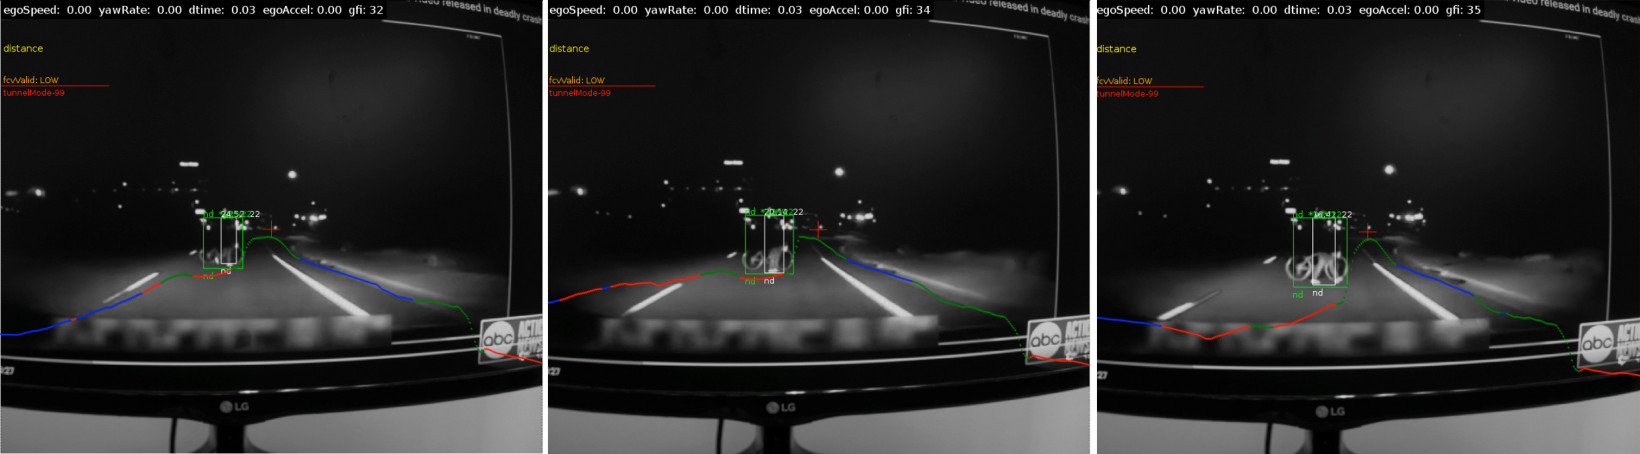 Images from a video feed watching a TV monitor showing the clip released by the police. The overlaid graphics show the Mobileye ADAS system response. The green and white bounding boxes are outputs from the bicycle and pedestrian detection modules. The horizontal graph shows the boundary between the roadway and physical obstacles